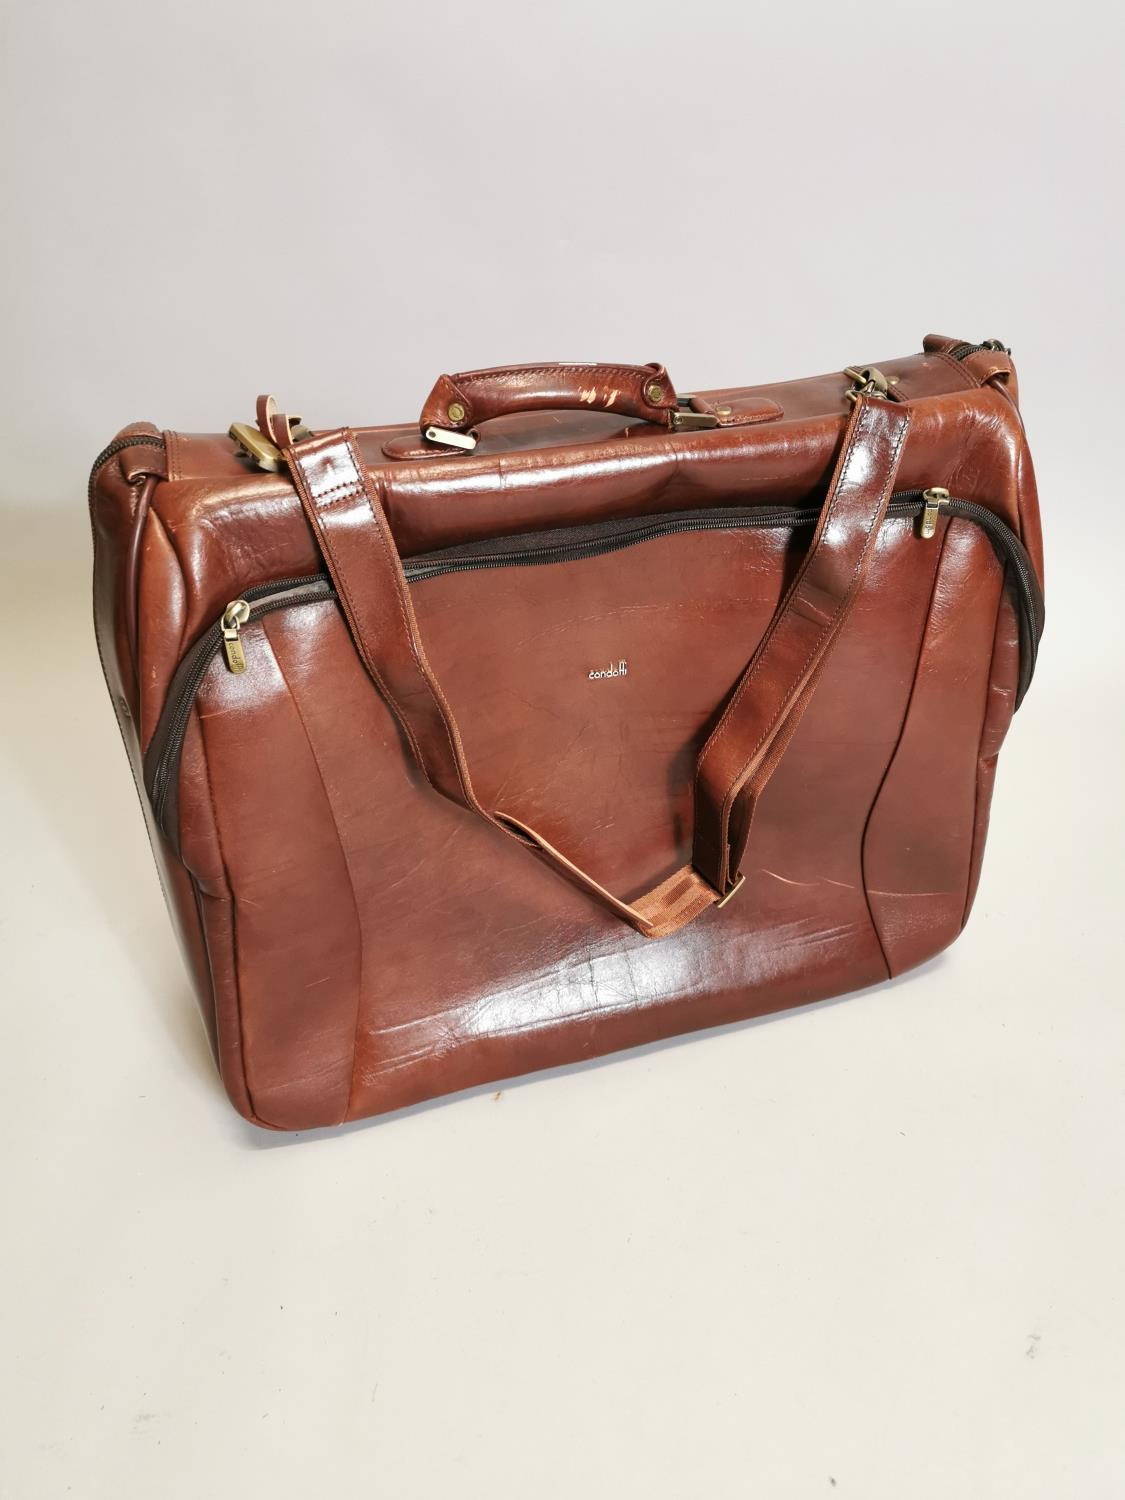 Condoffi gent's leather travel bag - Image 2 of 3